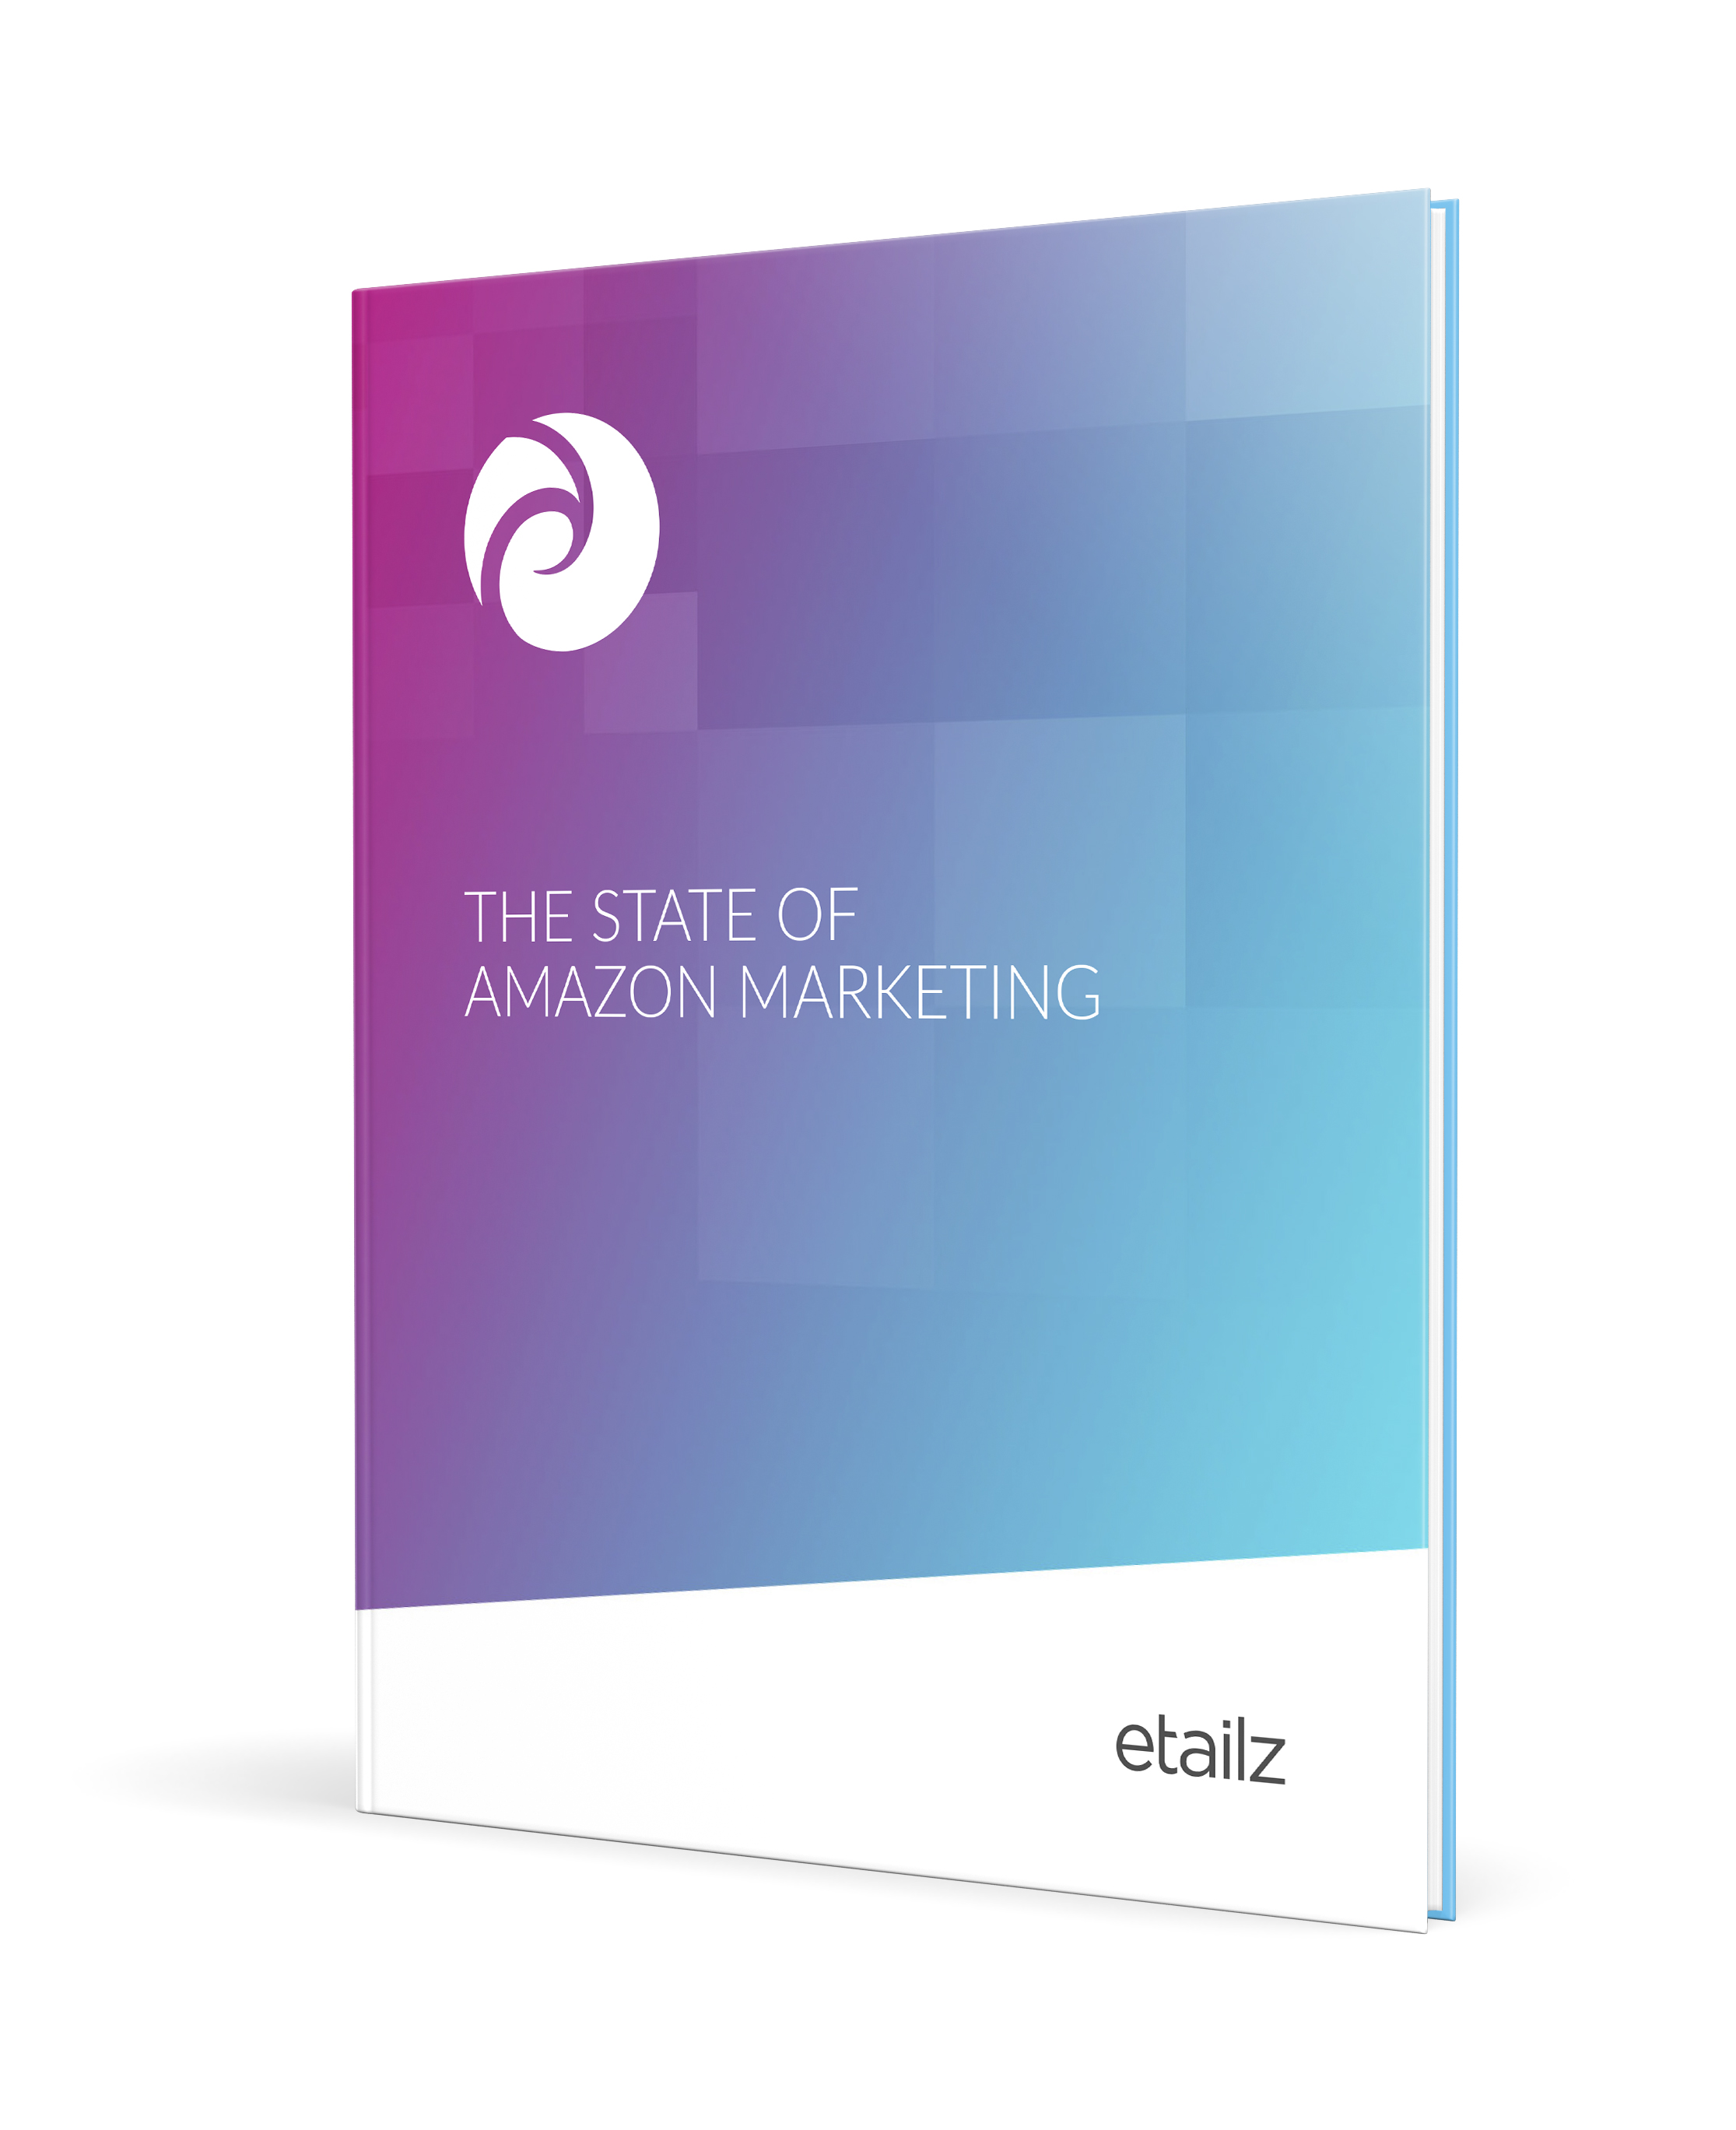 The State of Amazon Marketing